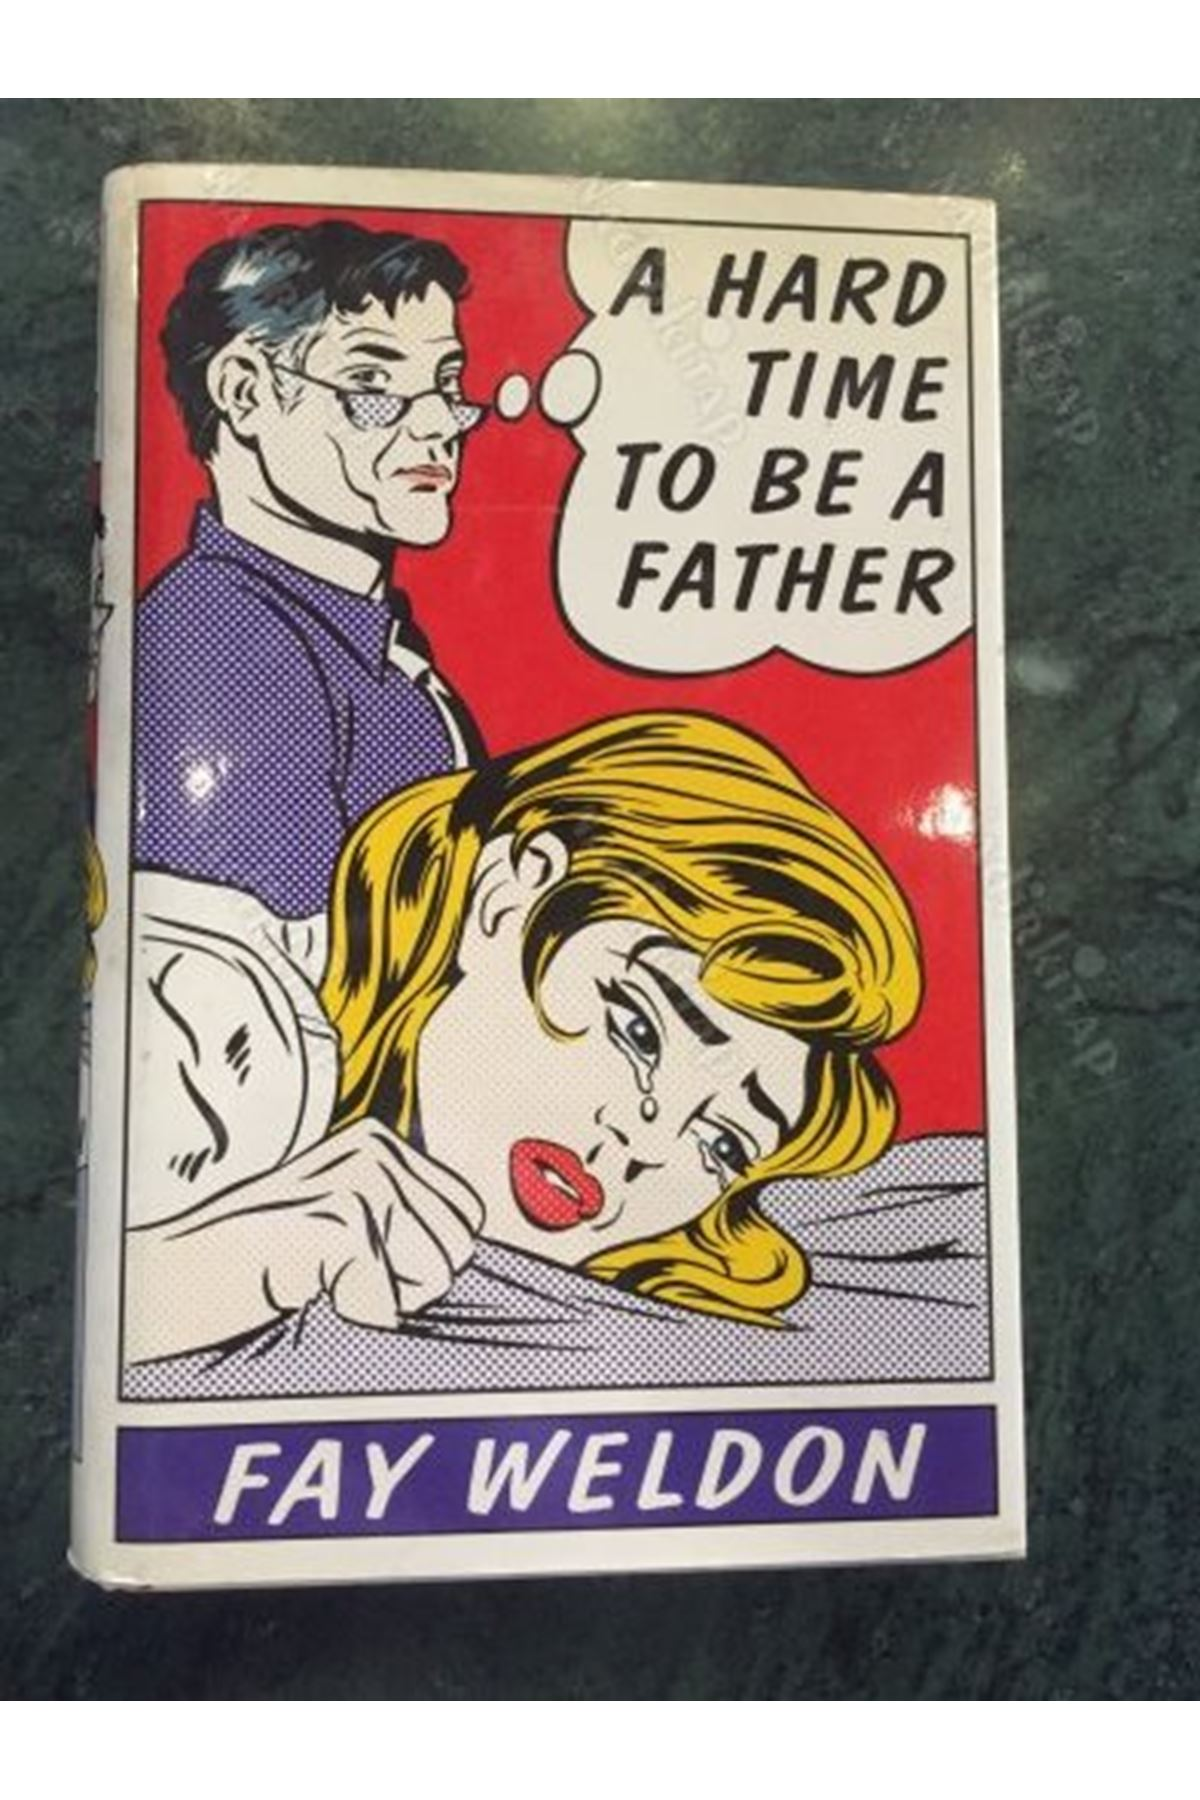 FAY WELDON - A HARD TIME TO BE A FATHER